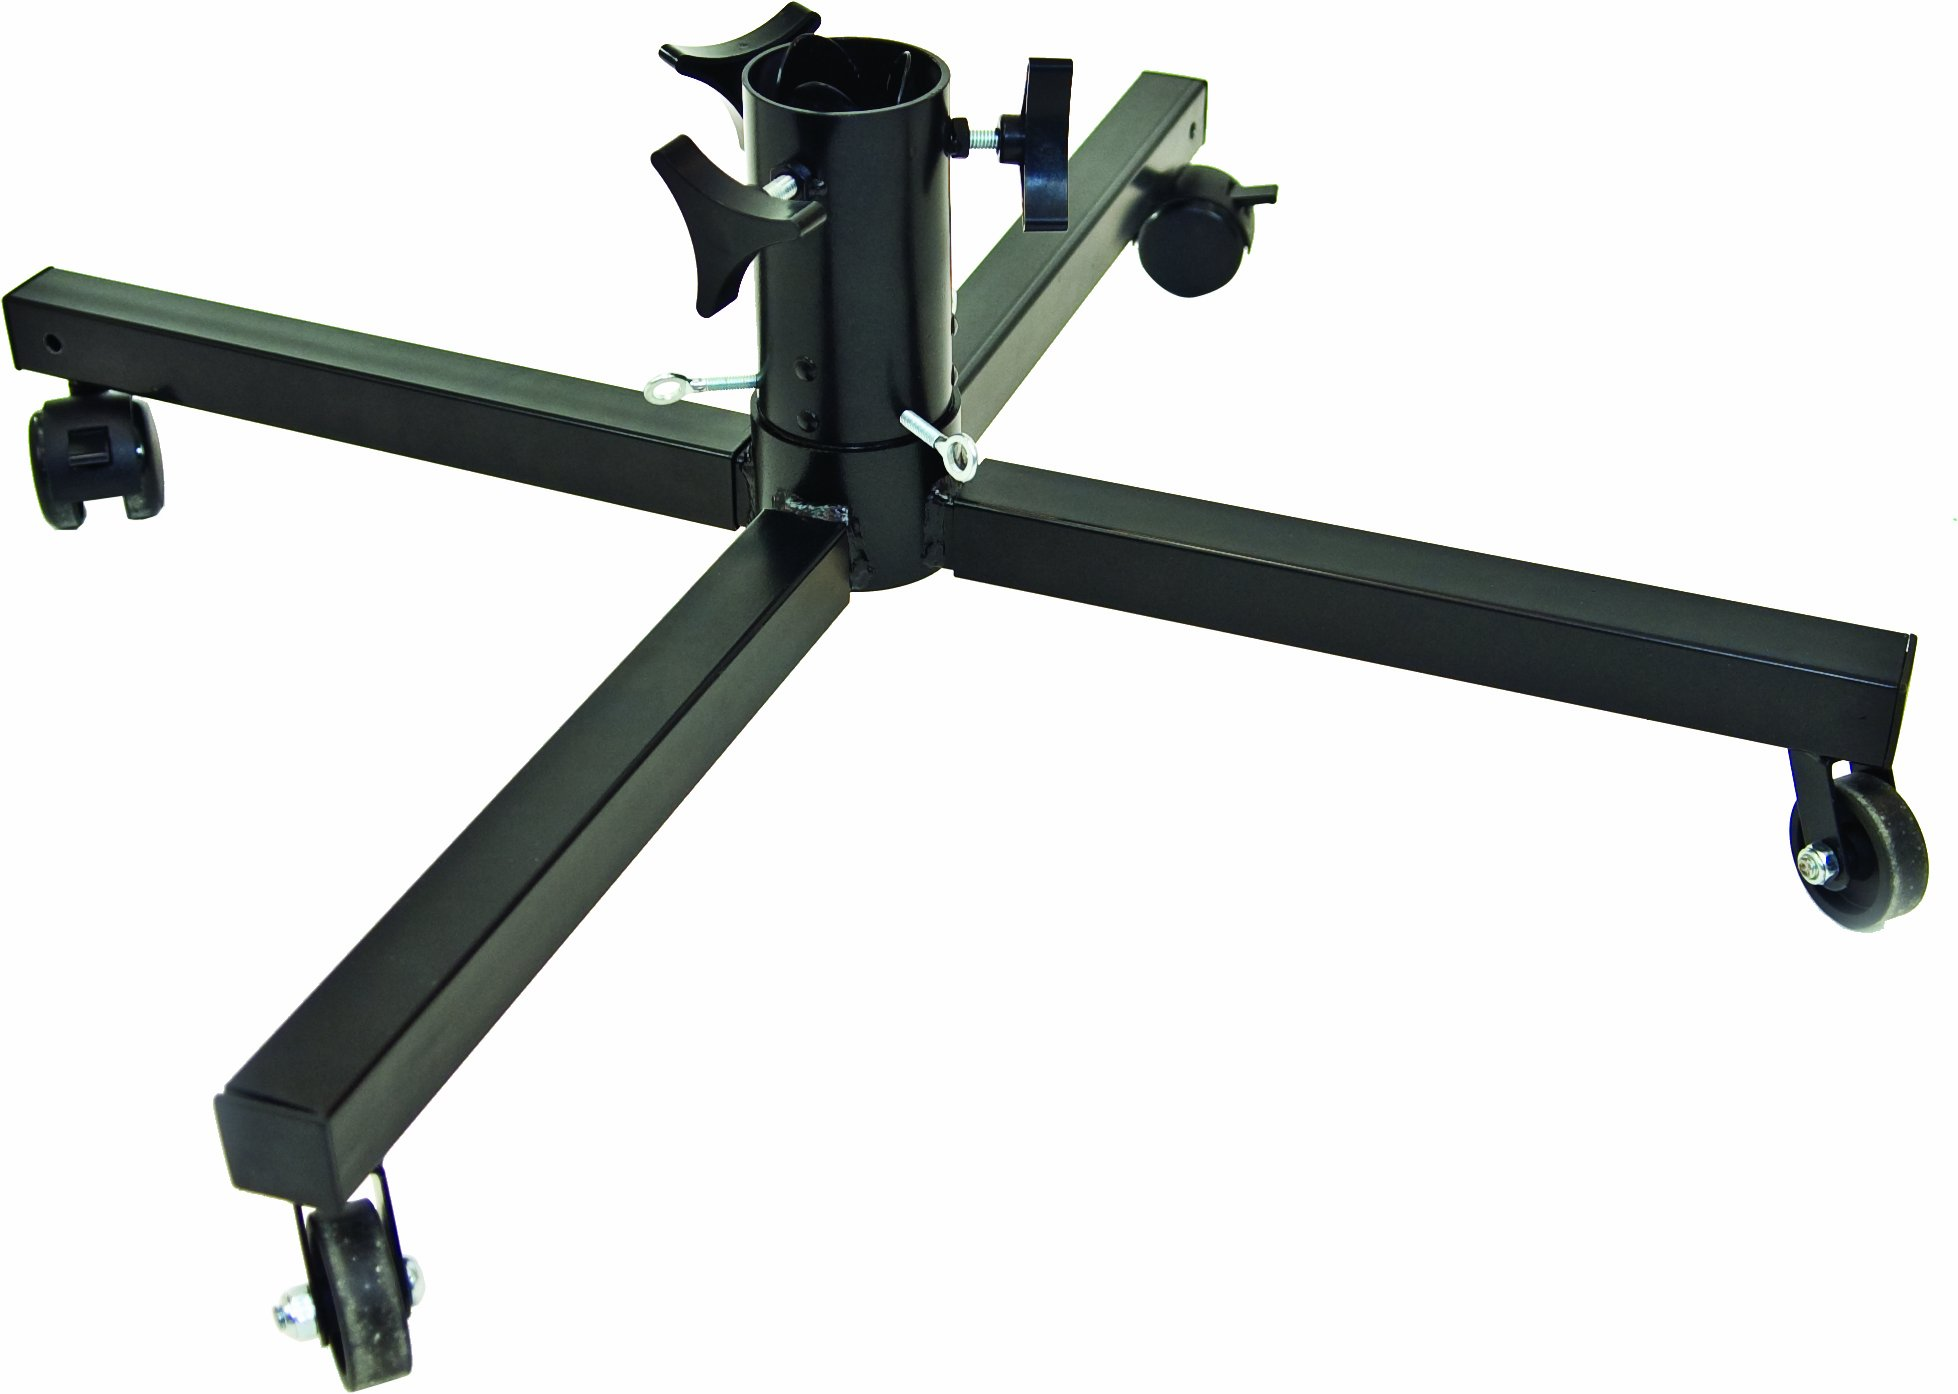 TreeKeeper Heavy-Duty Rolling Tree Stand